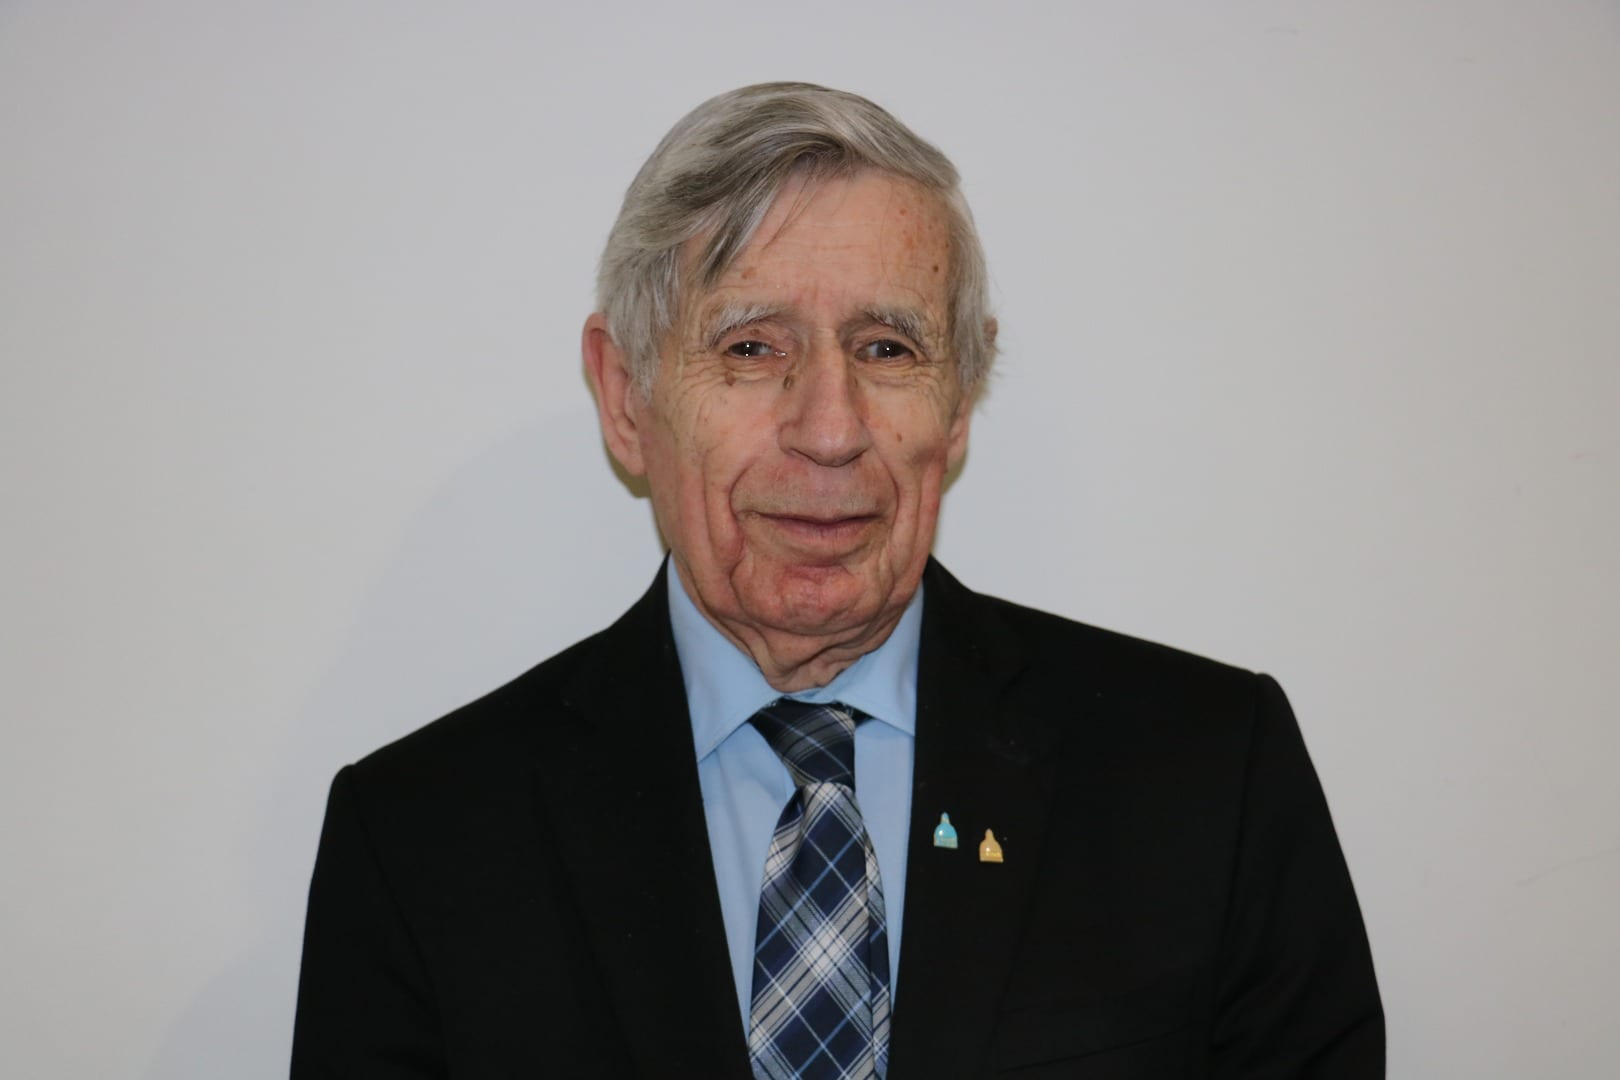 John Grady, new Chair of Friends of the Grand